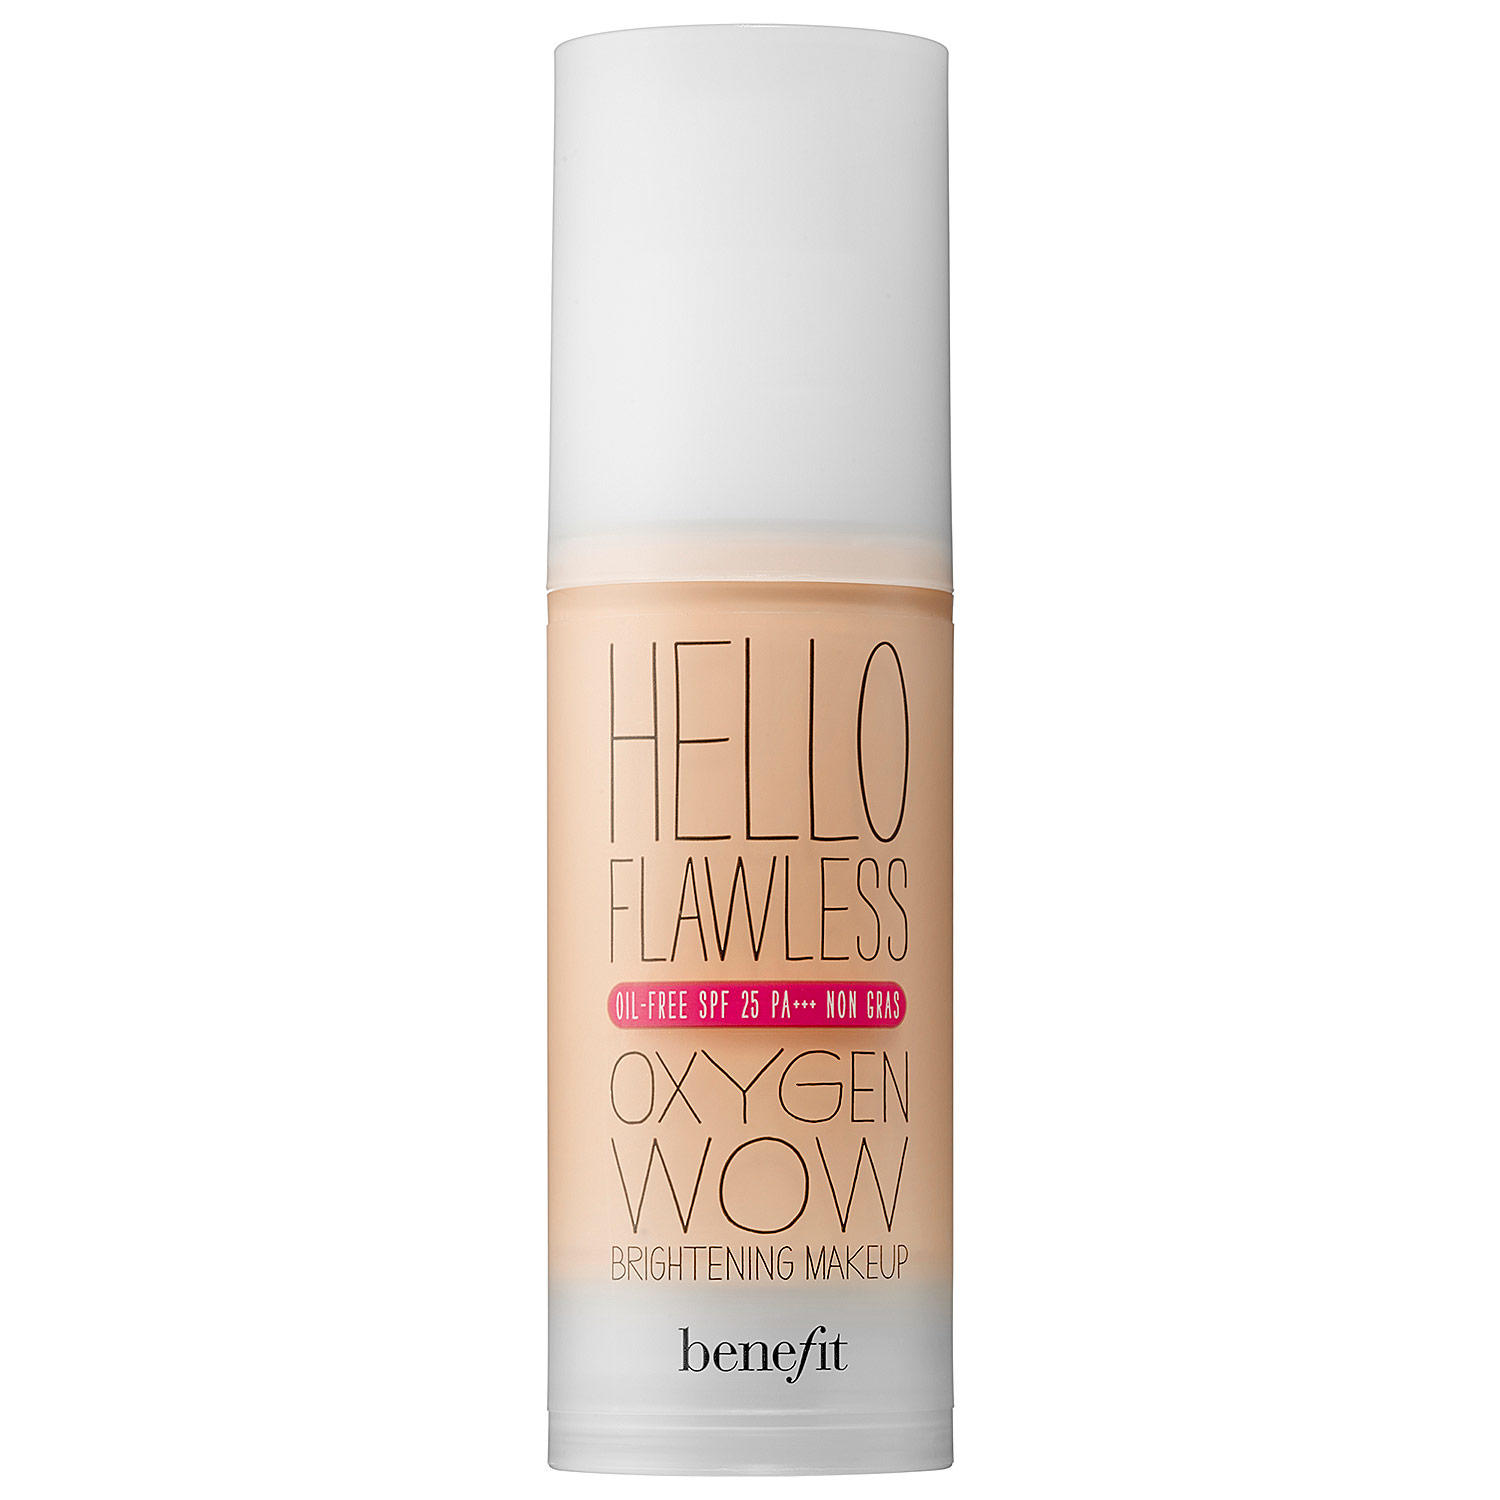 Benefit Hello Flawless Oxygen Wow Brightening Makeup Foundation Champagne